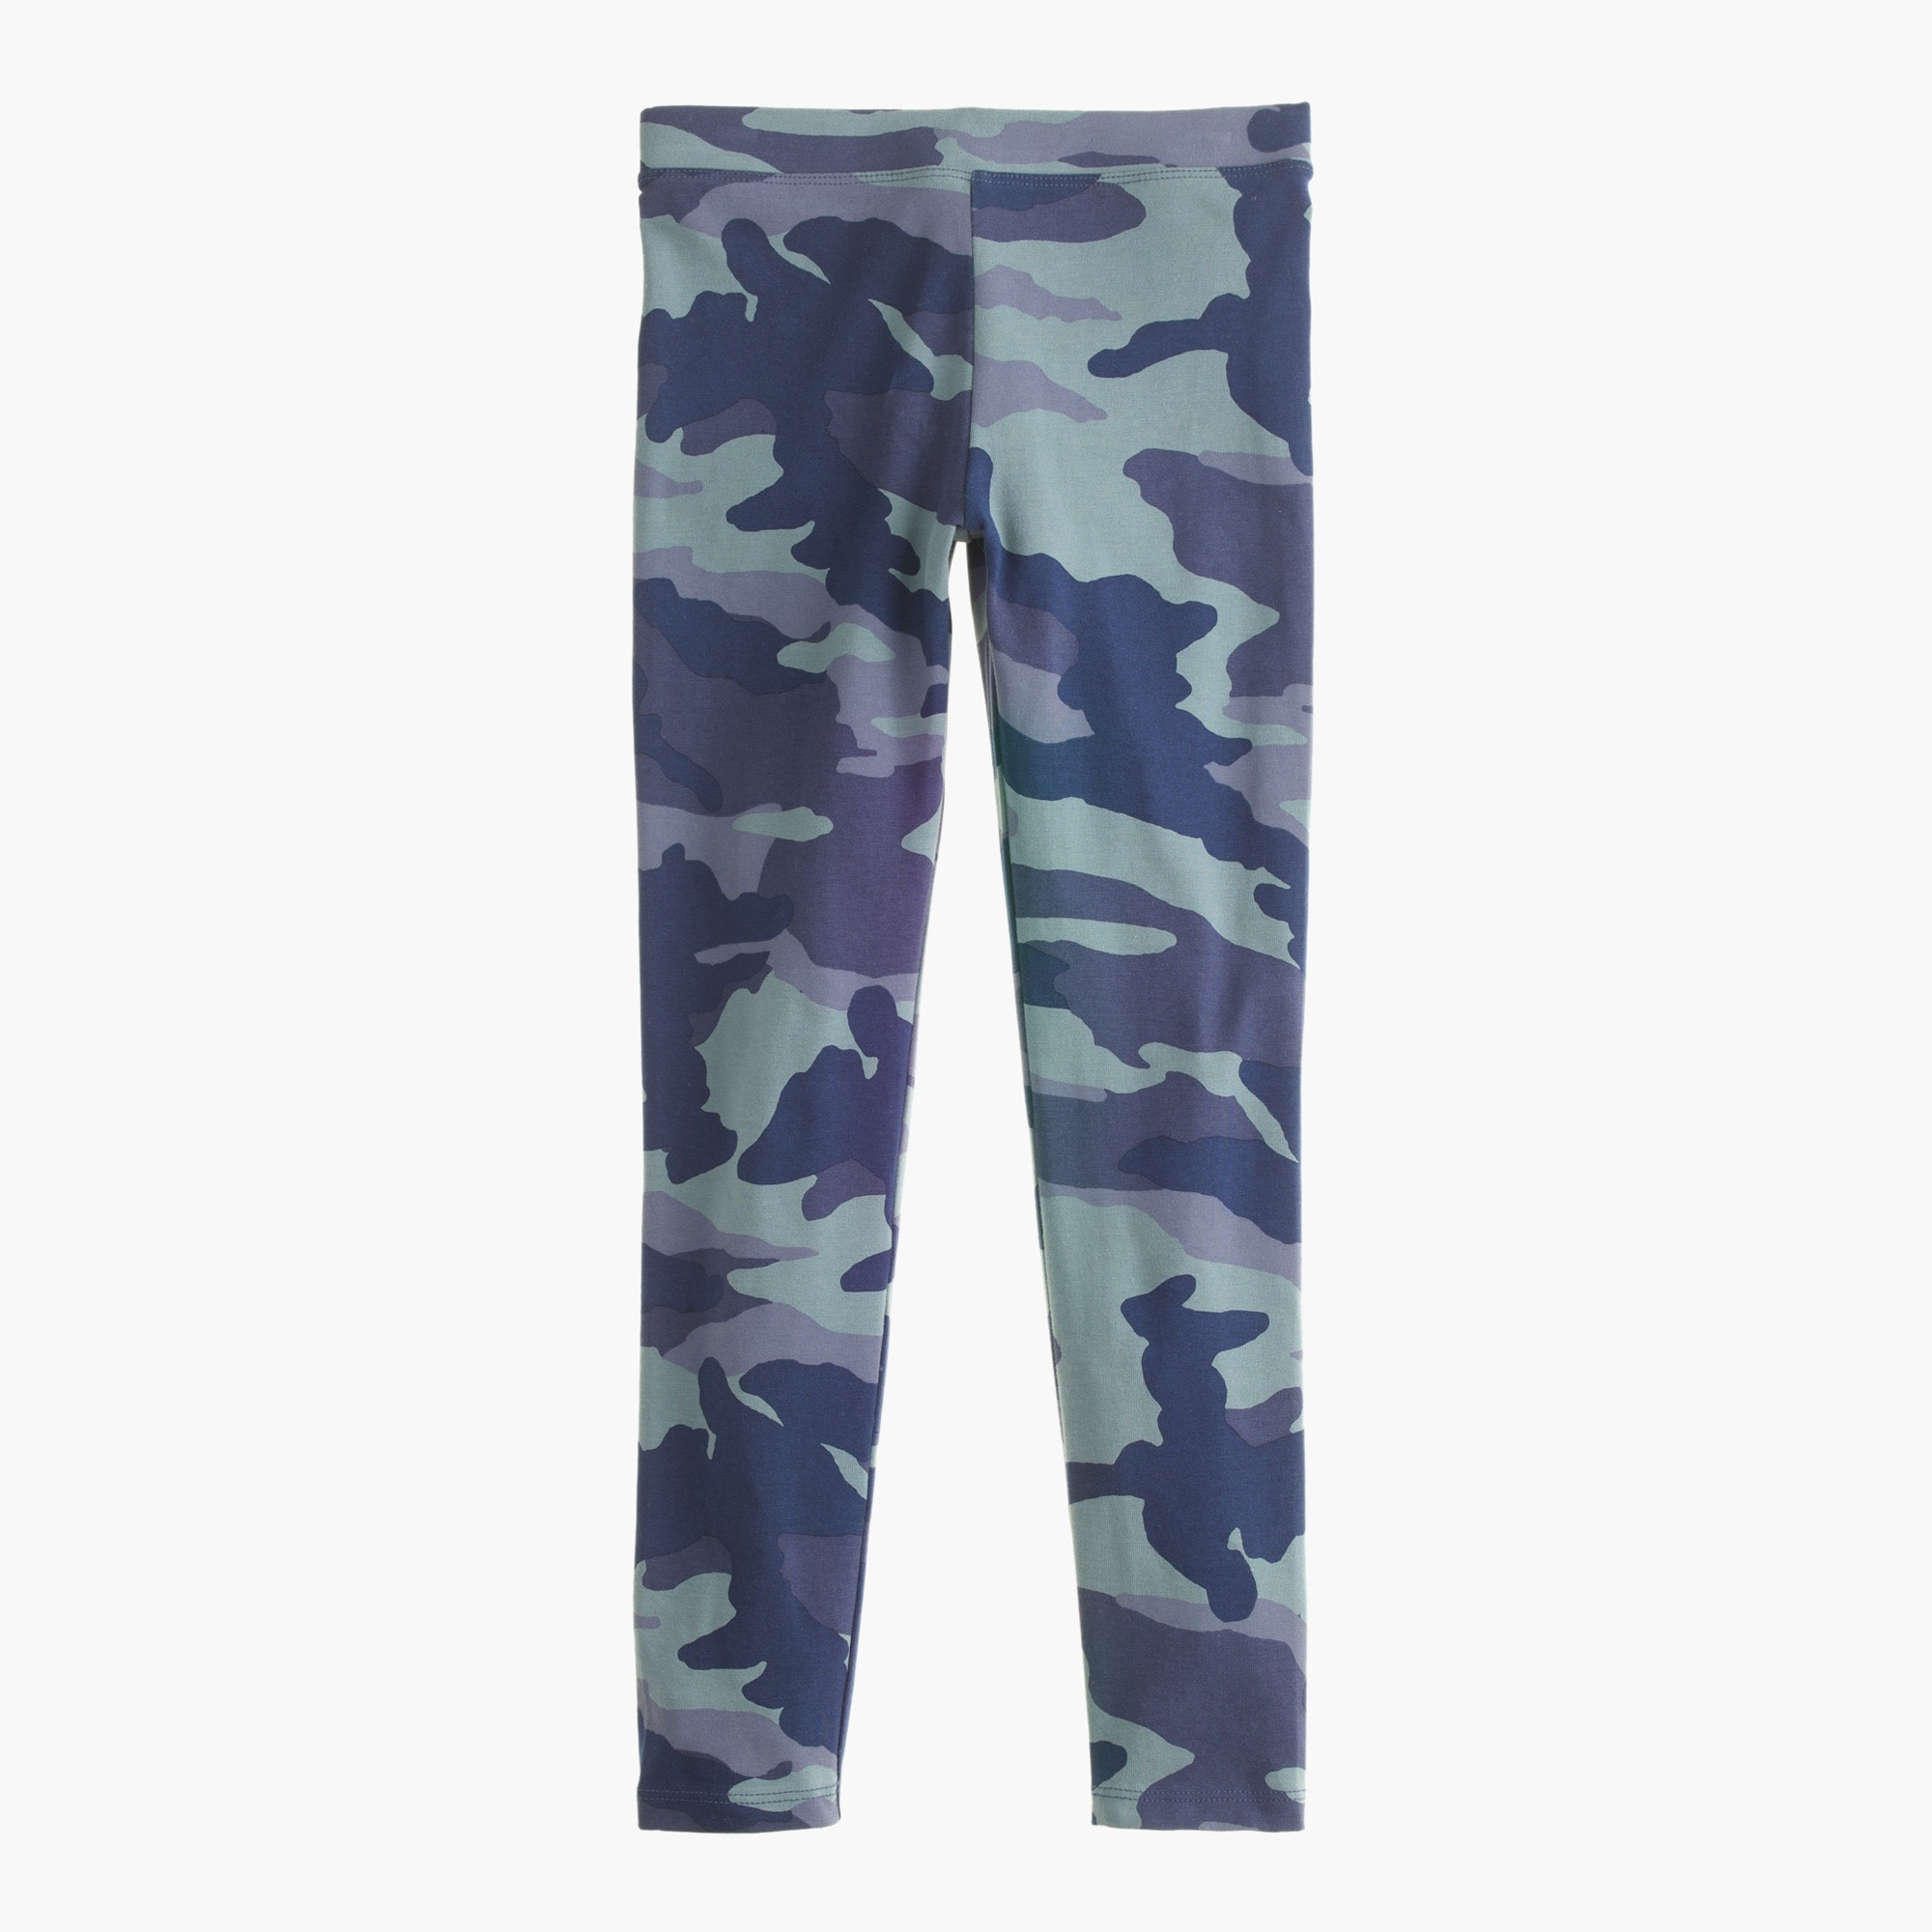 Image 1 for Girls' everyday leggings in camo